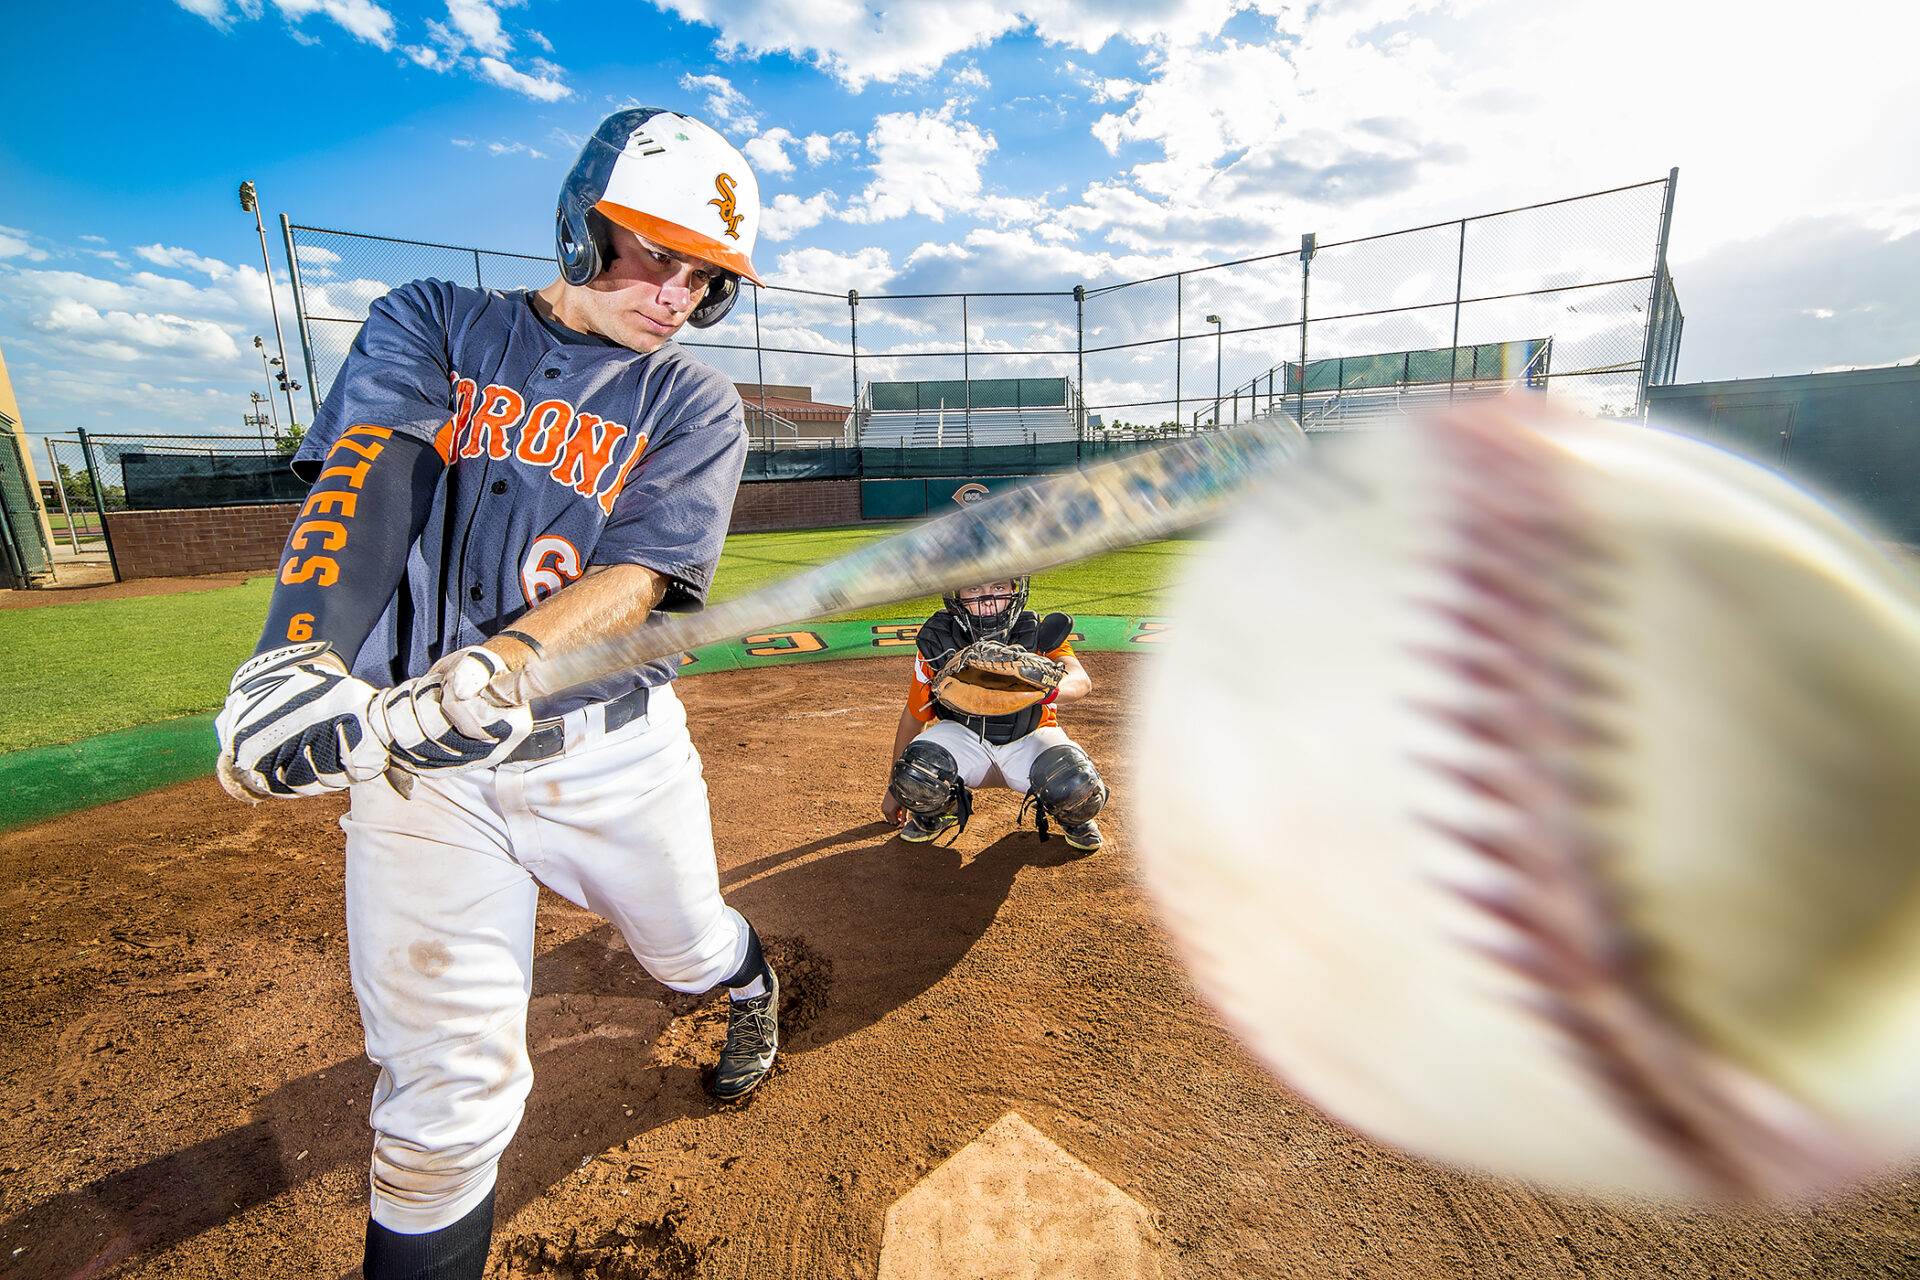 Corona del Sol Baseball, player-in-focus: Damon DeVirgilio